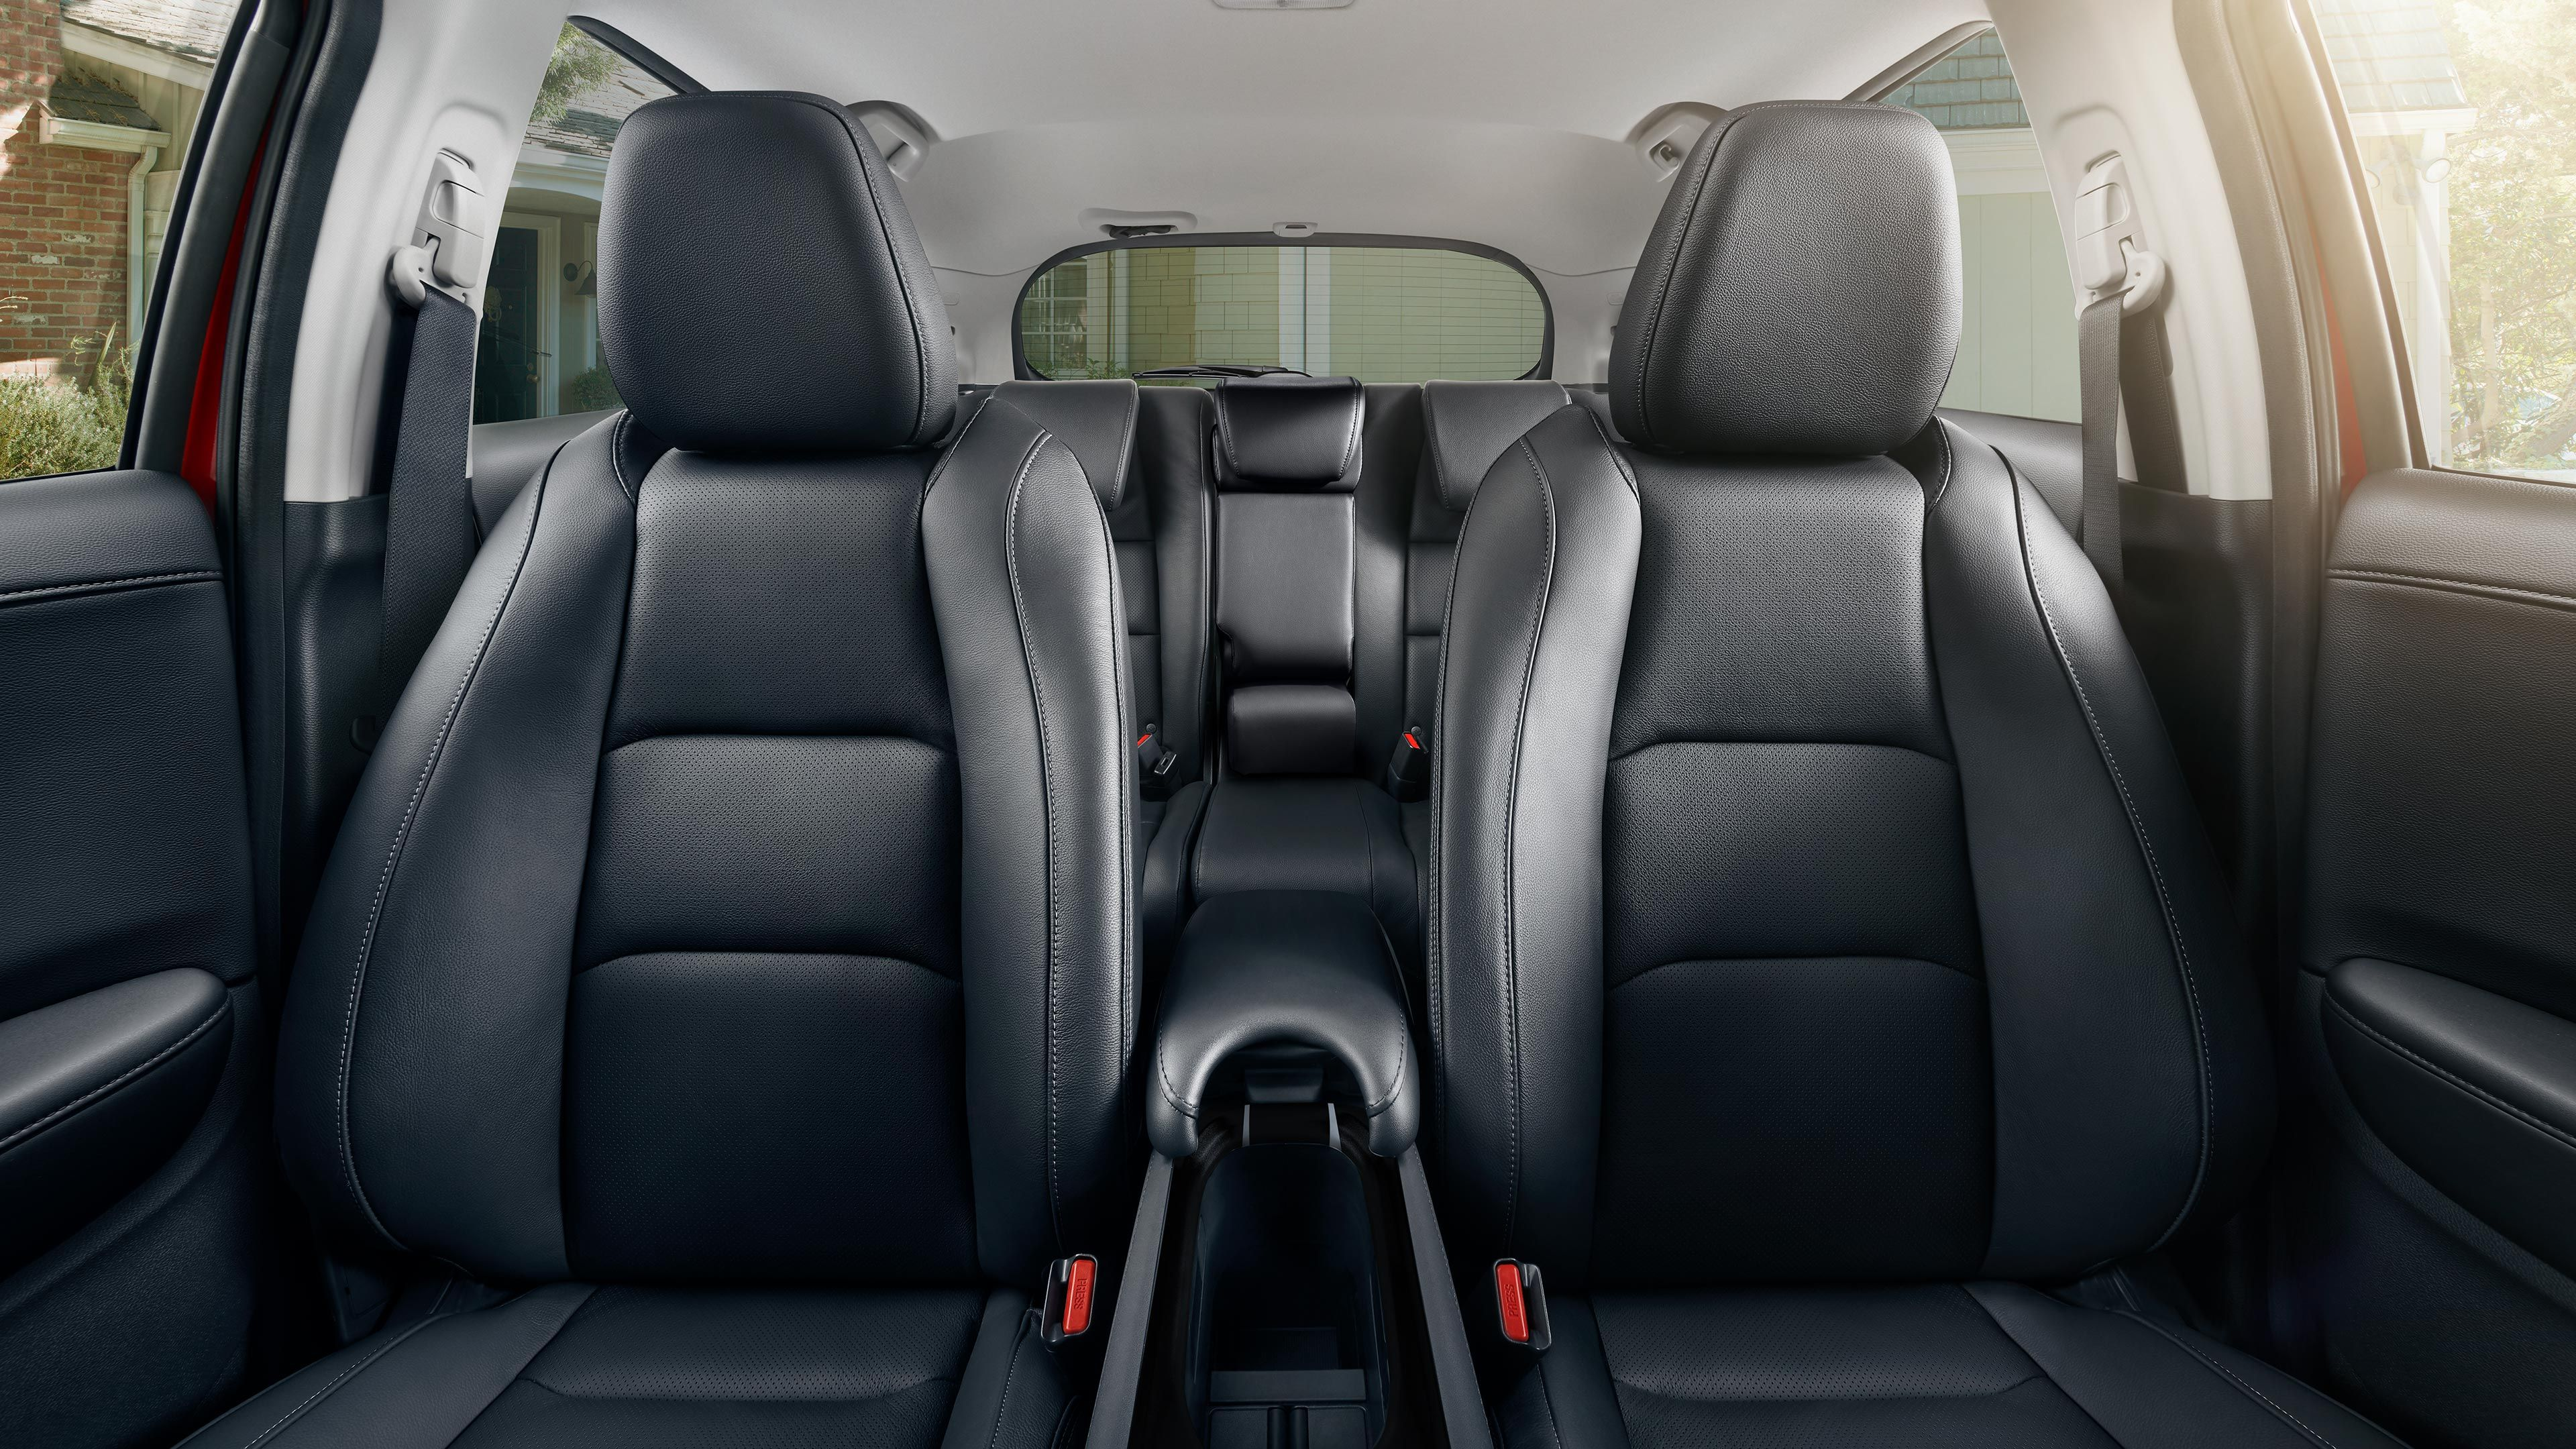 Interior of the 2020 Honda HR-V from the front to the back